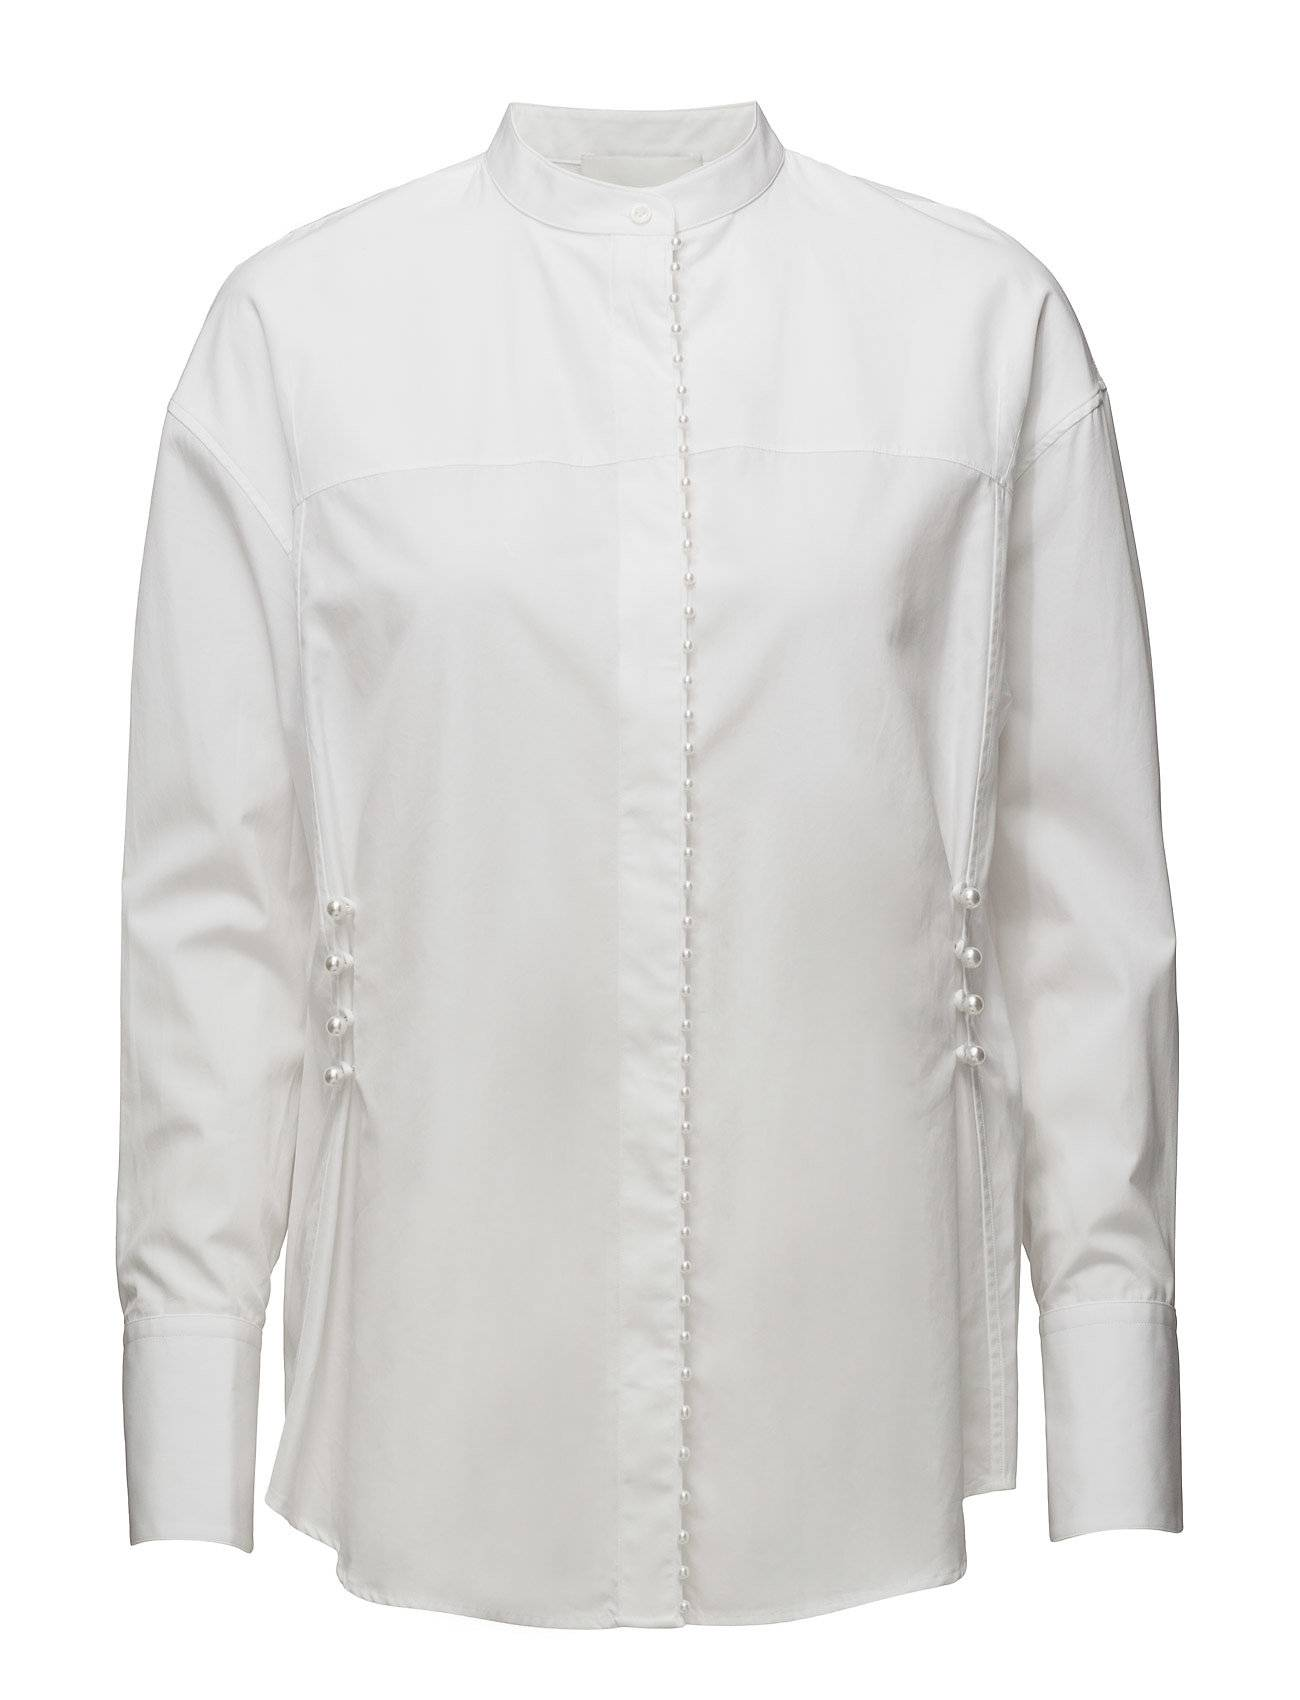 3.1 Phillip Lim Ls Blouse W Pearl Embroidery